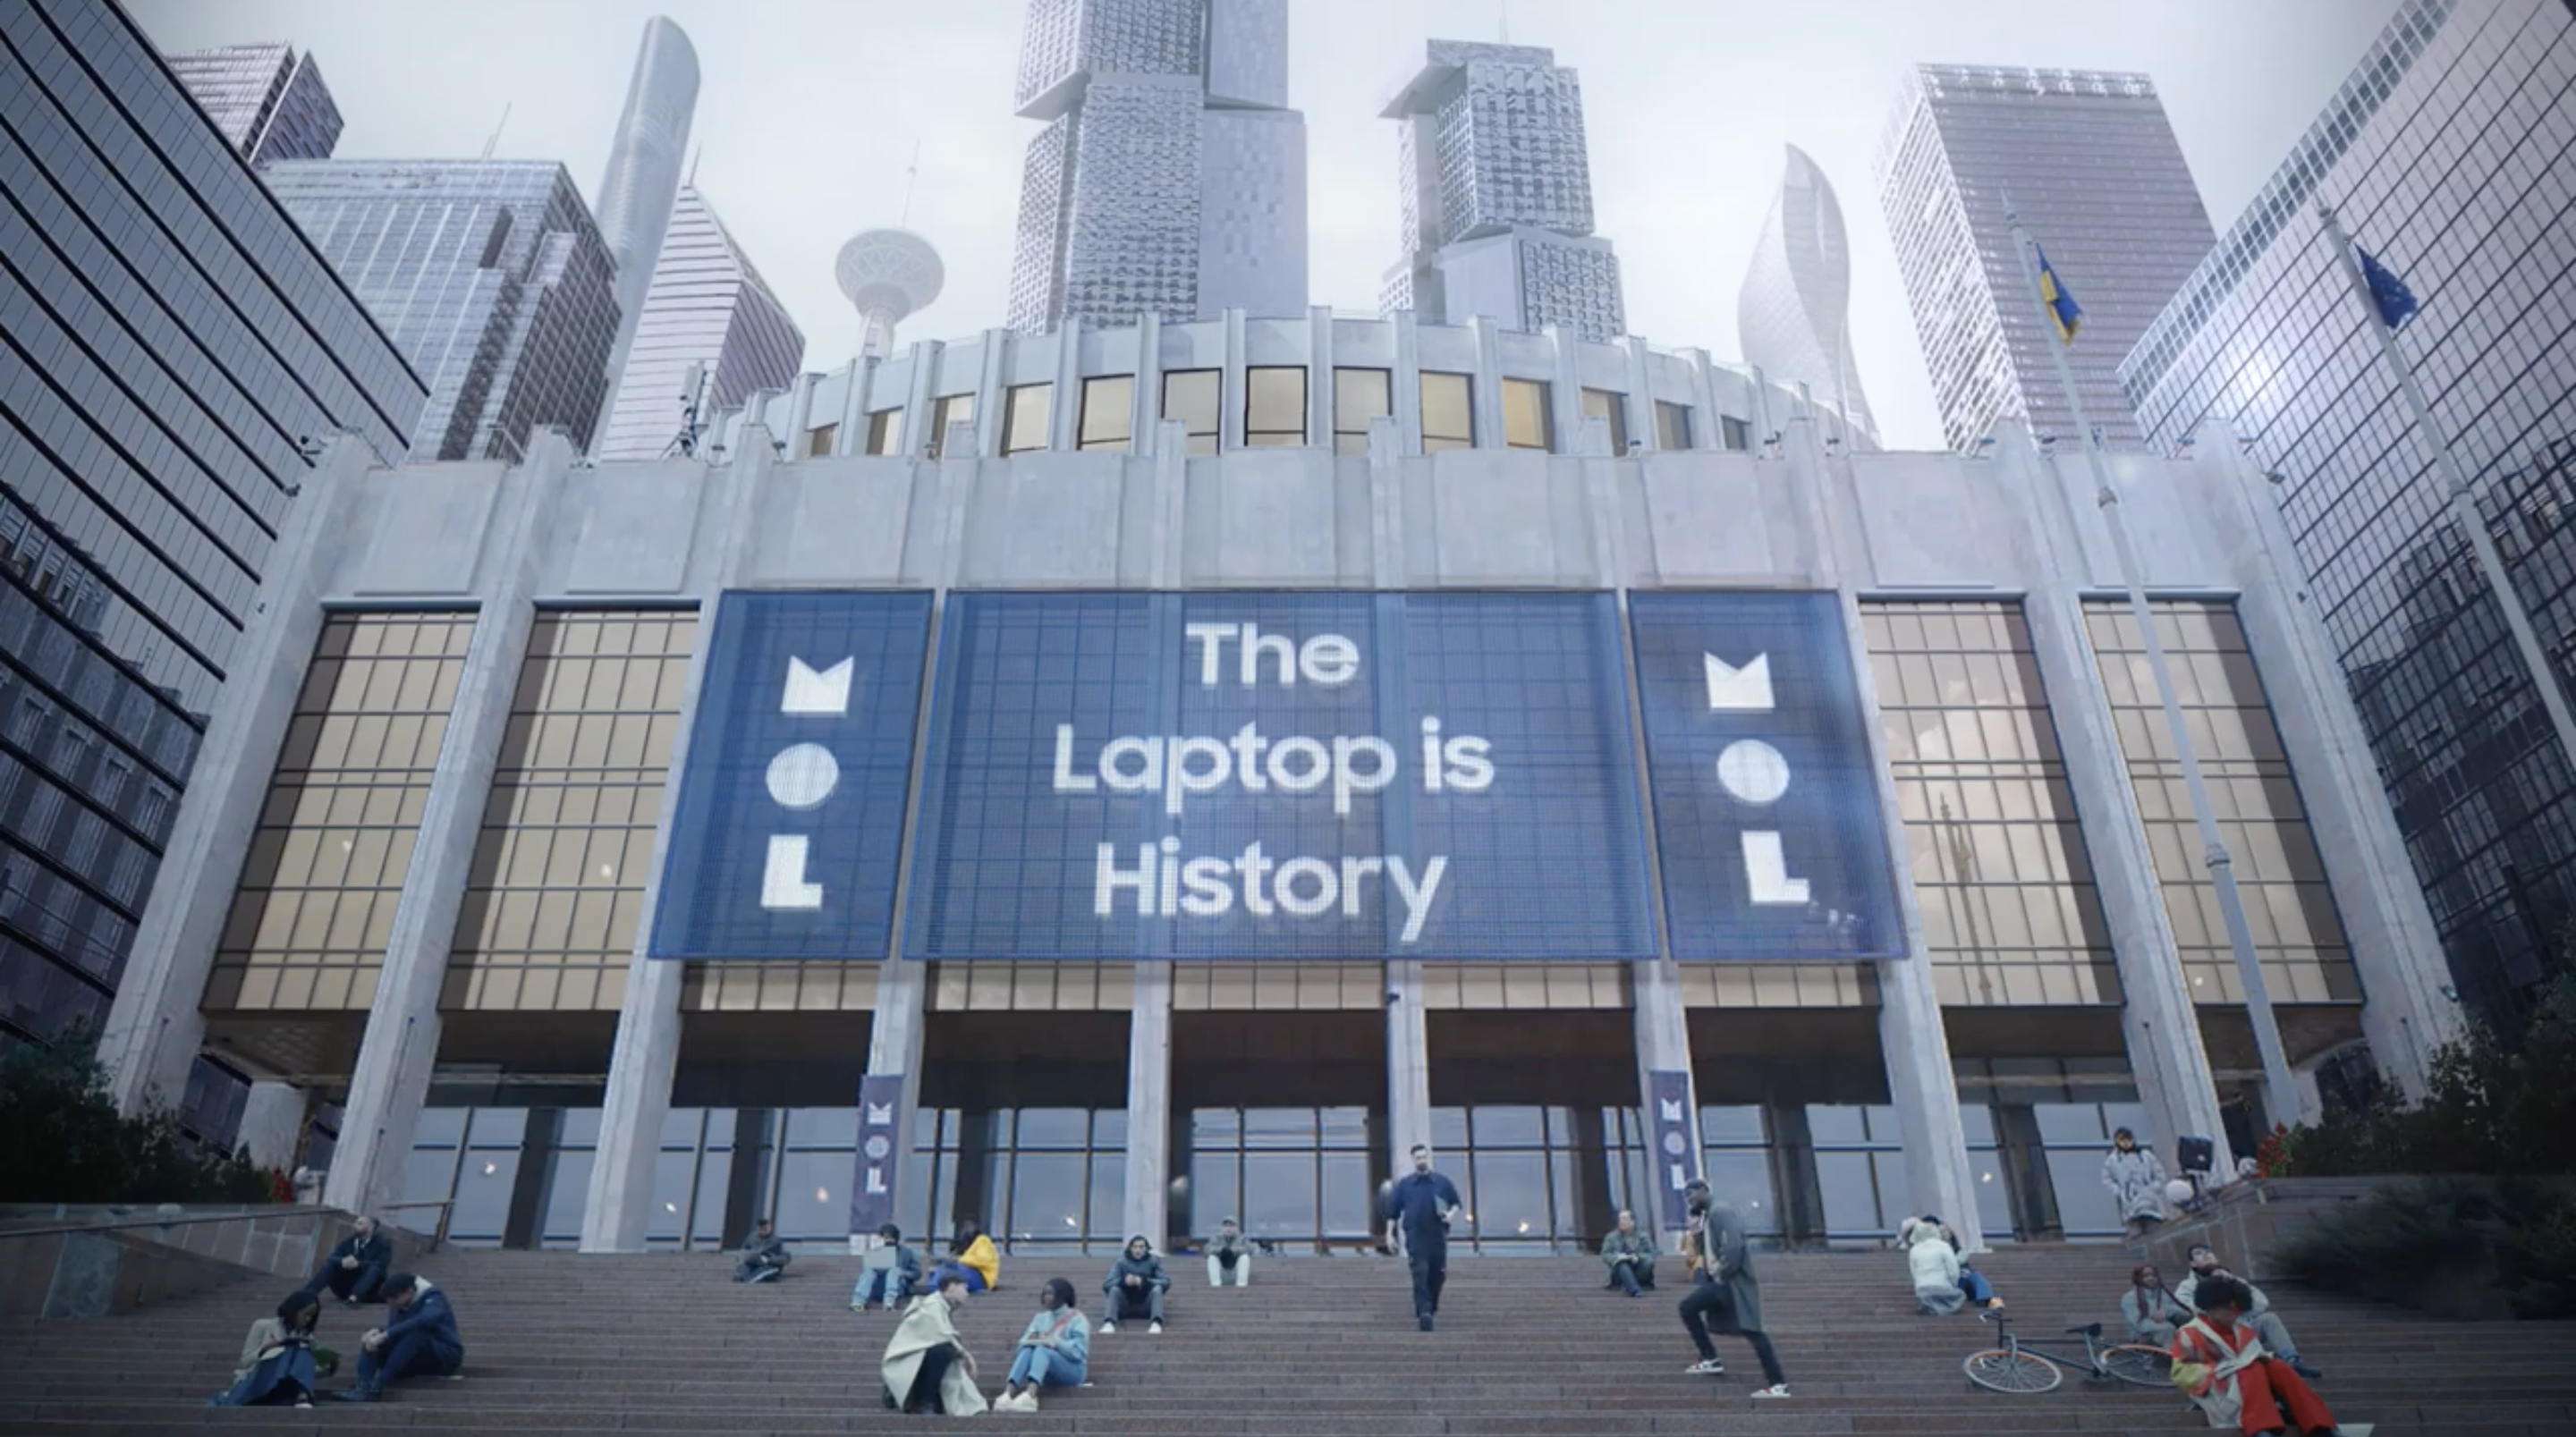 A museum with a large sign that reads